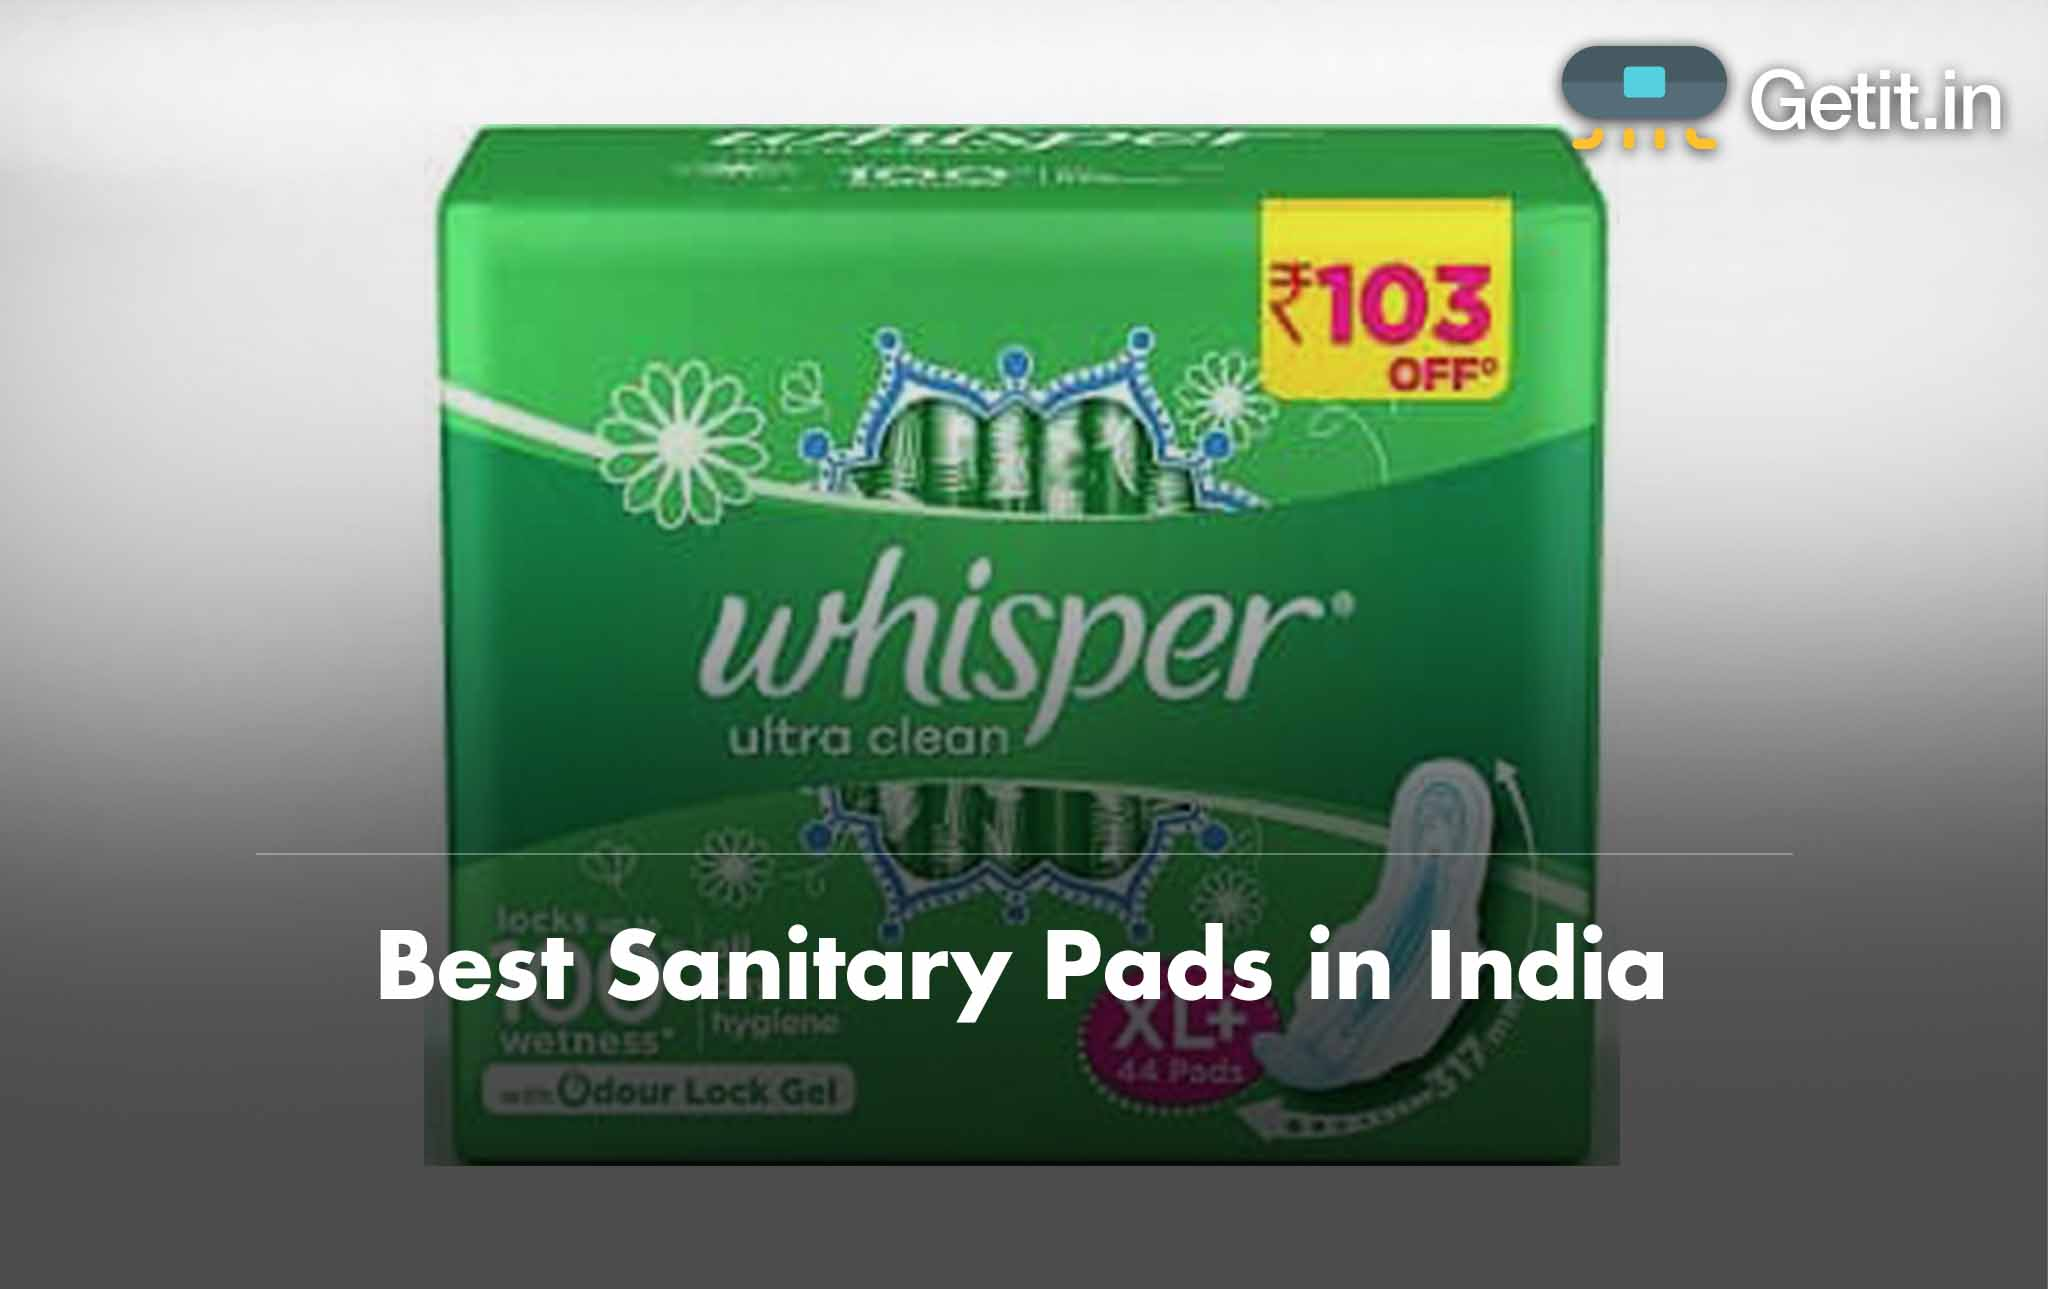 Best Sanitary Napkins in India